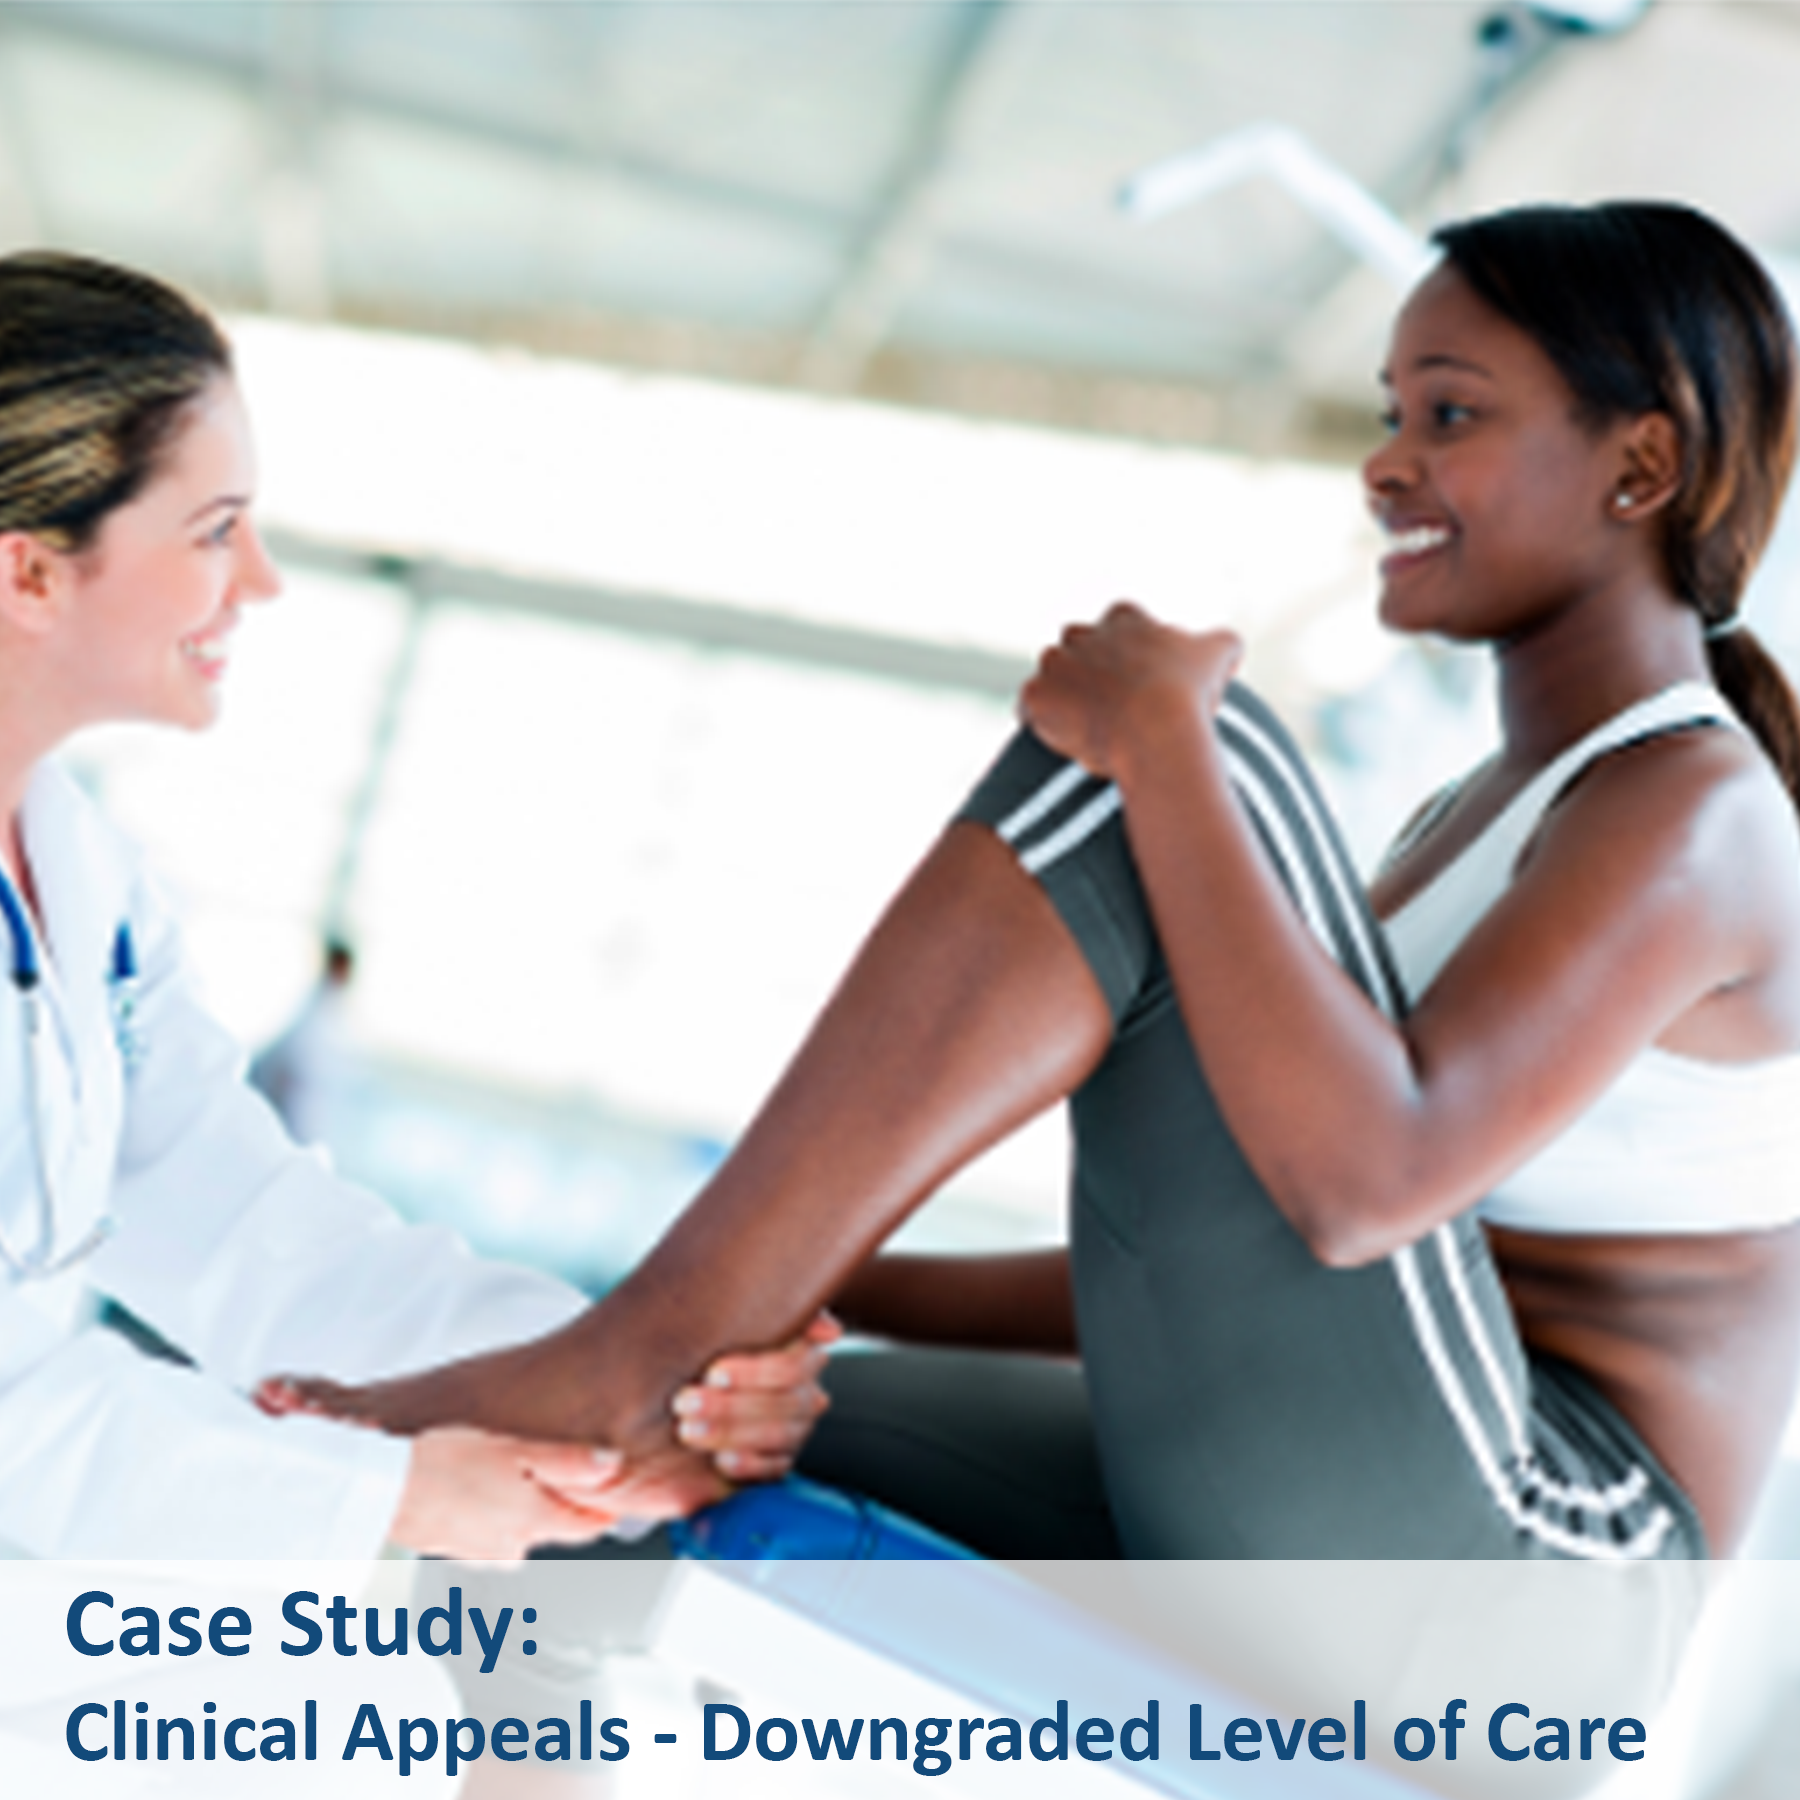 Case Study - Clinical Appeals - Downgraded Level of Care-1